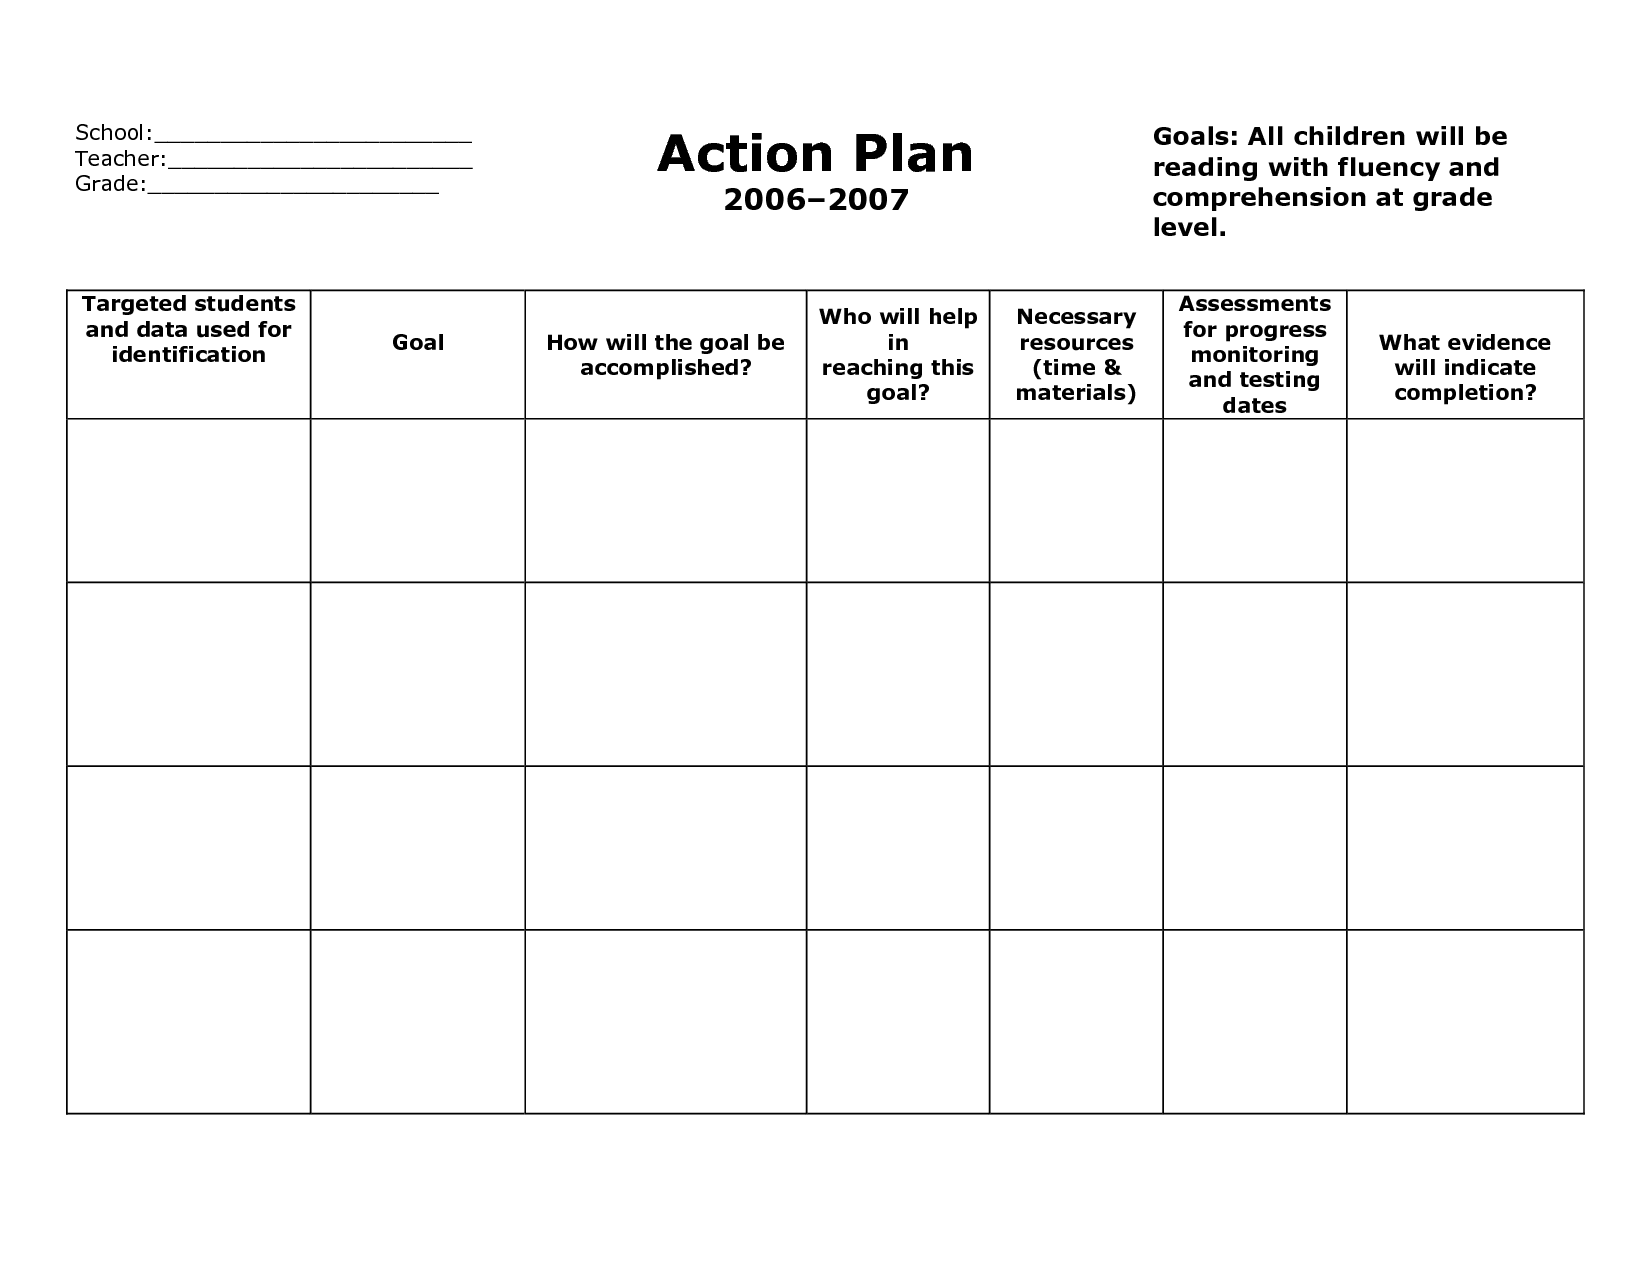 Action Plan Template | Action Plan Template Action Plan Format V5fclyv5 School Action